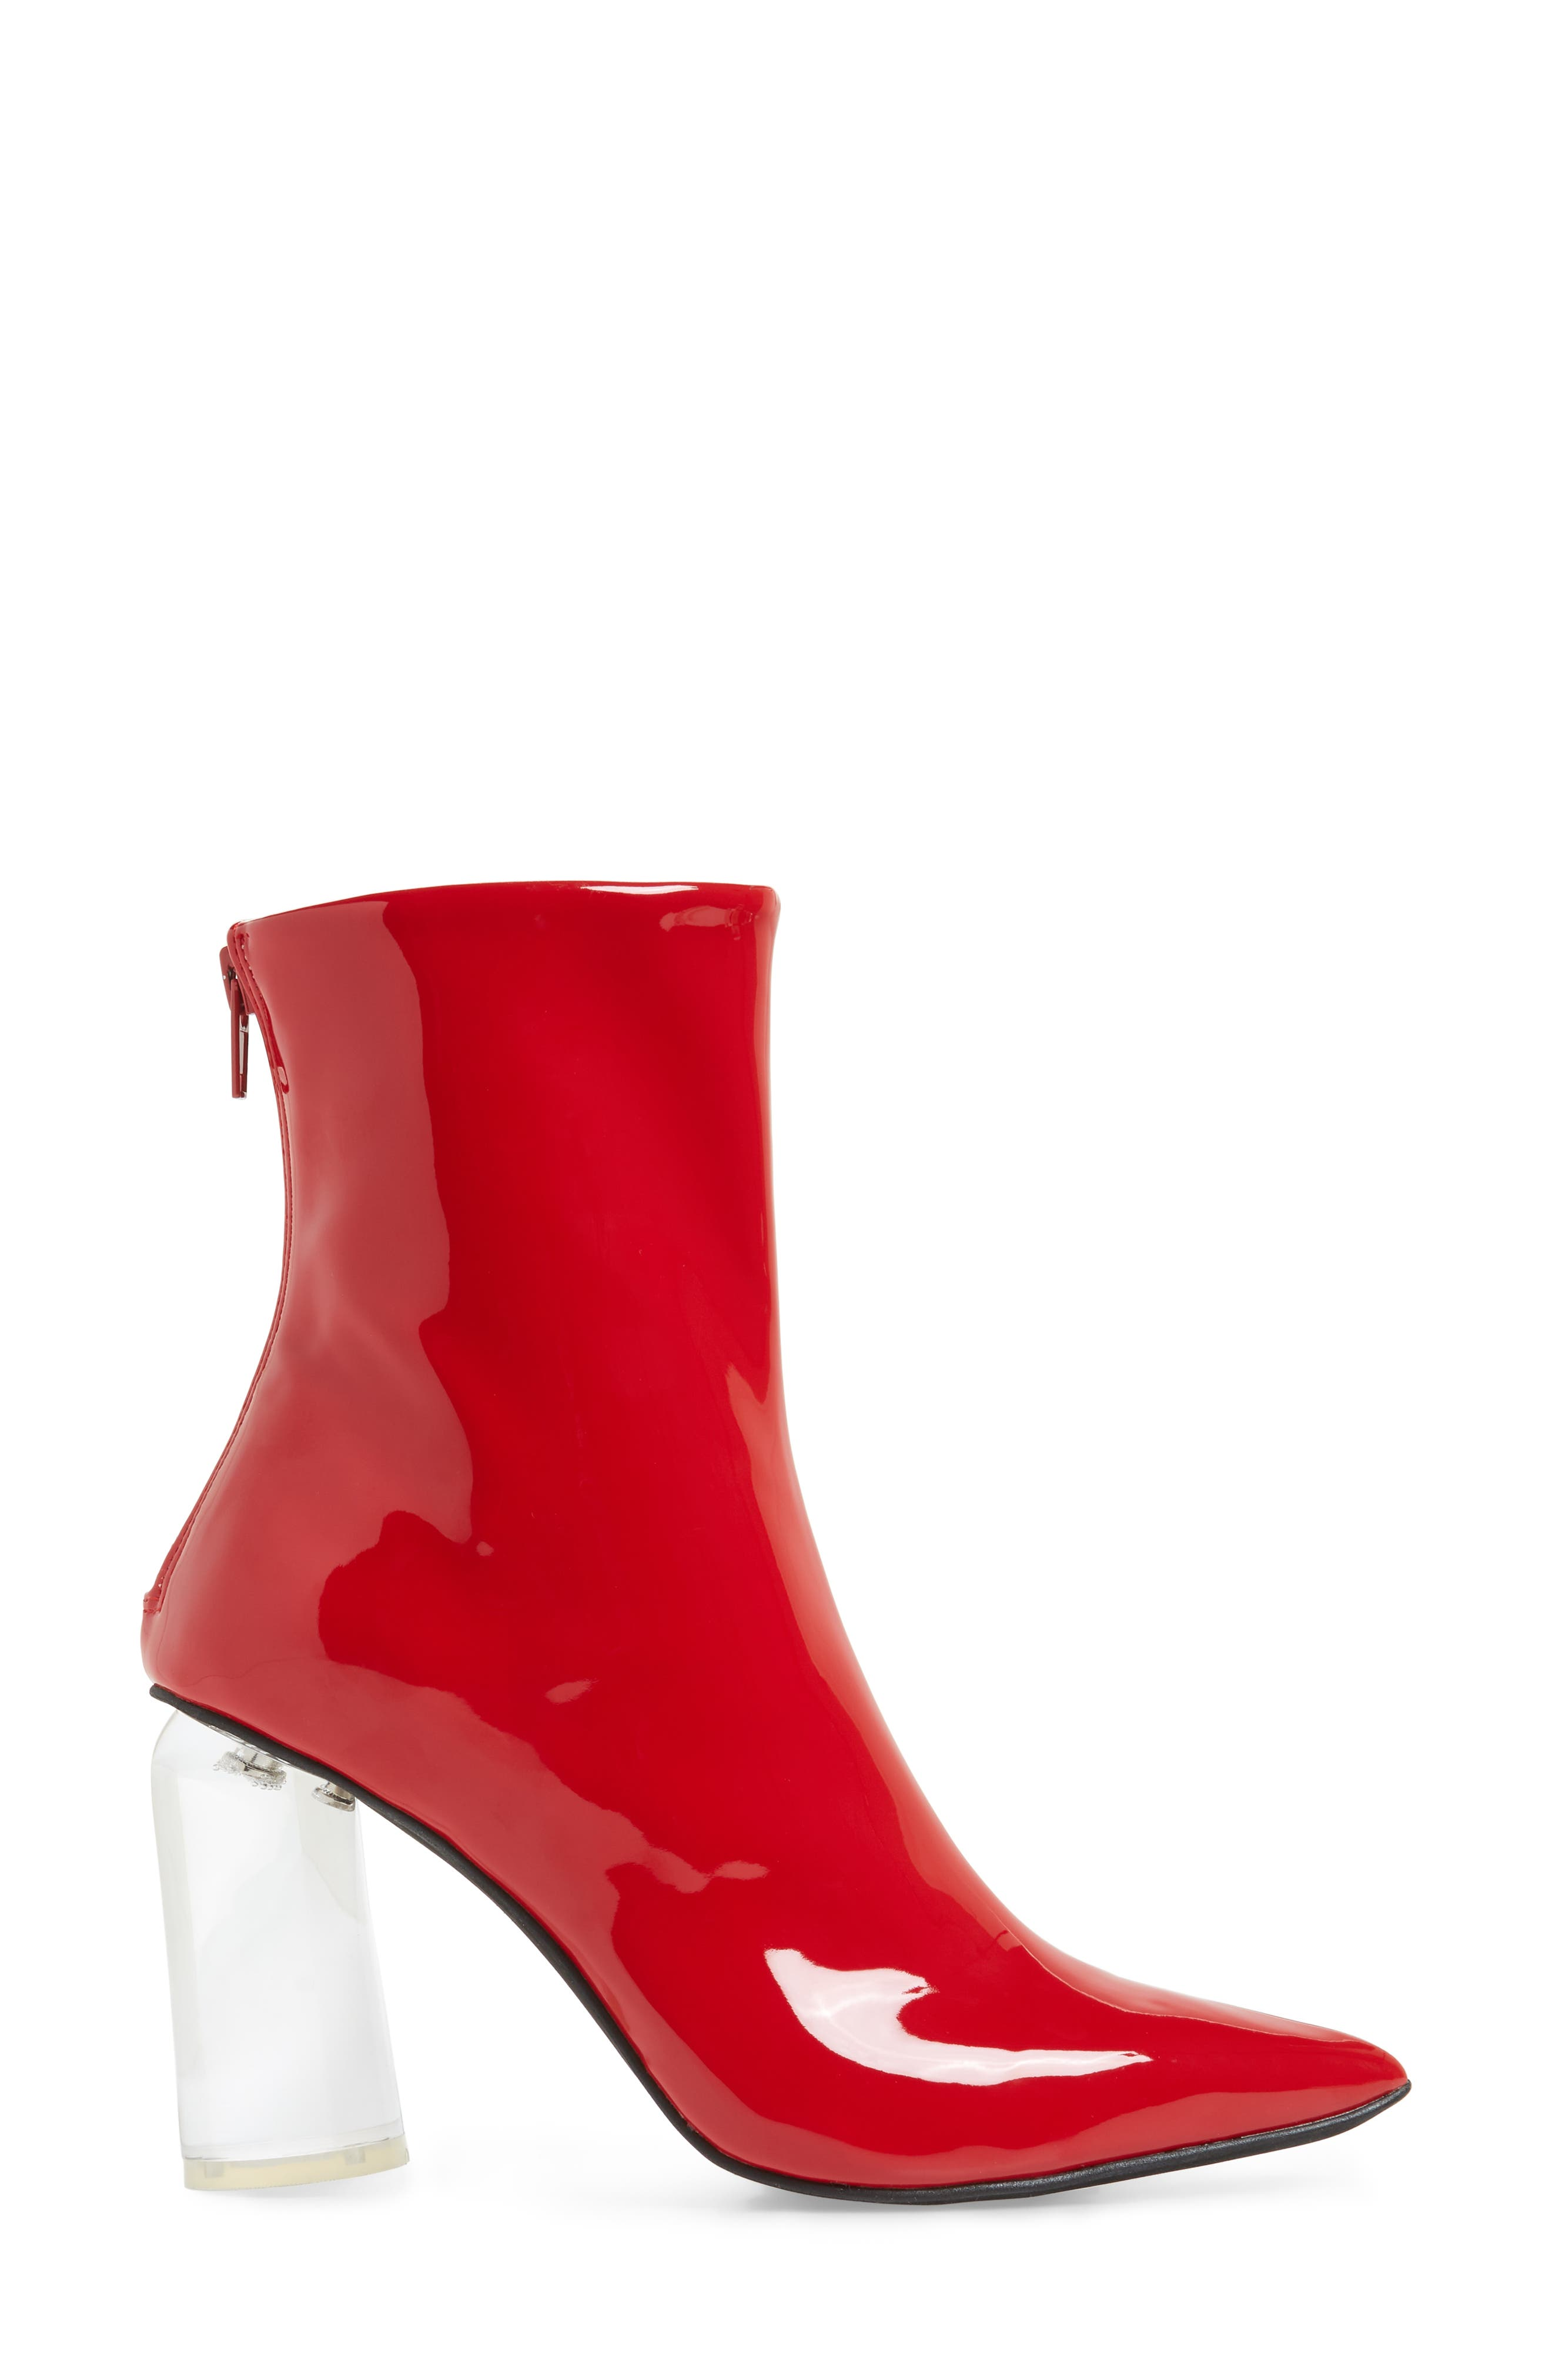 Lustrous Column Heel Bootie,                             Alternate thumbnail 3, color,                             Red Patent Leather/ Clear